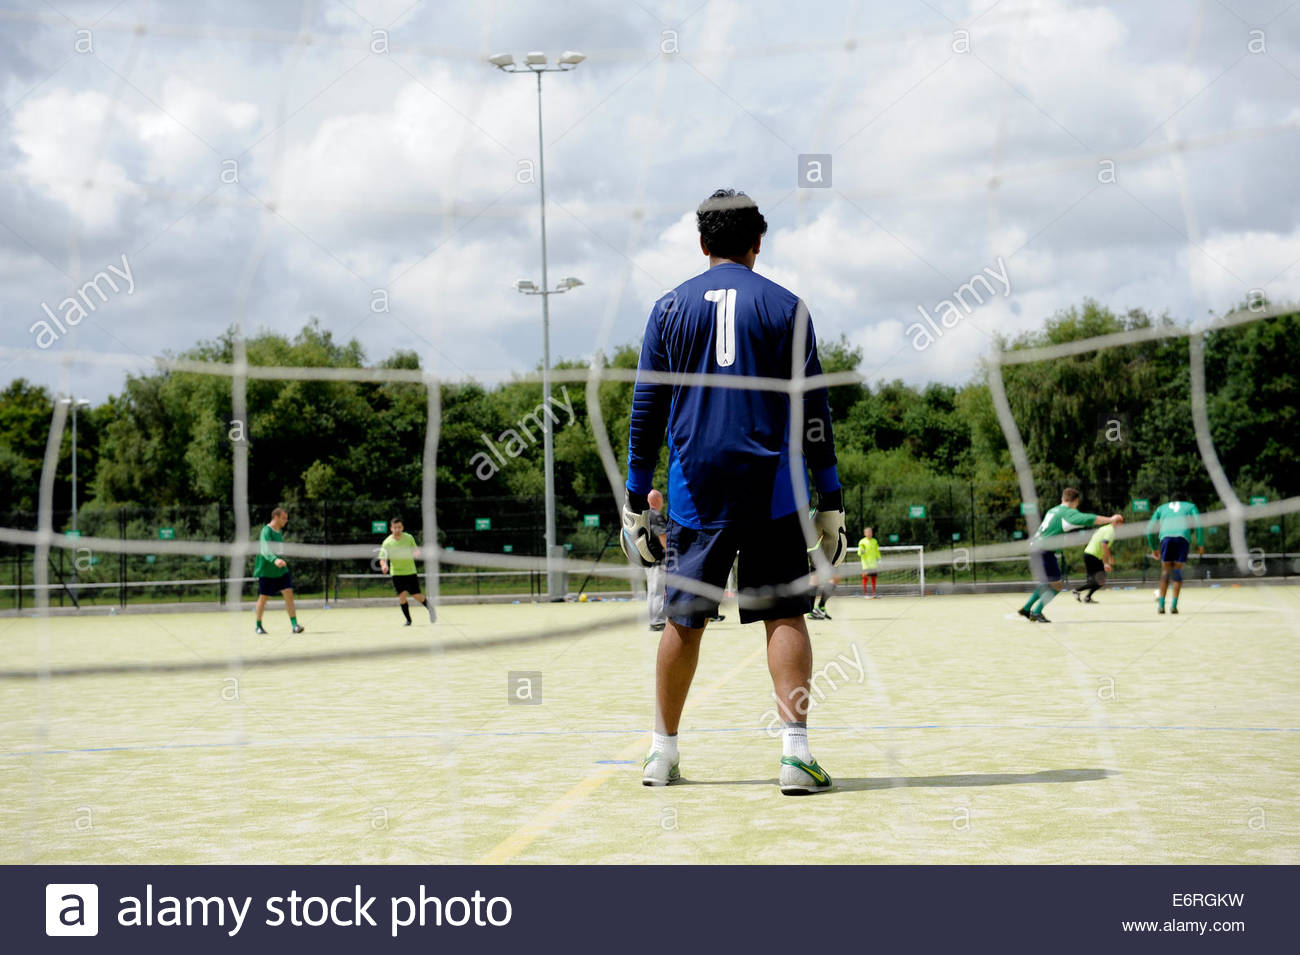 A goalkeepers view of a soccer match - Stock Image